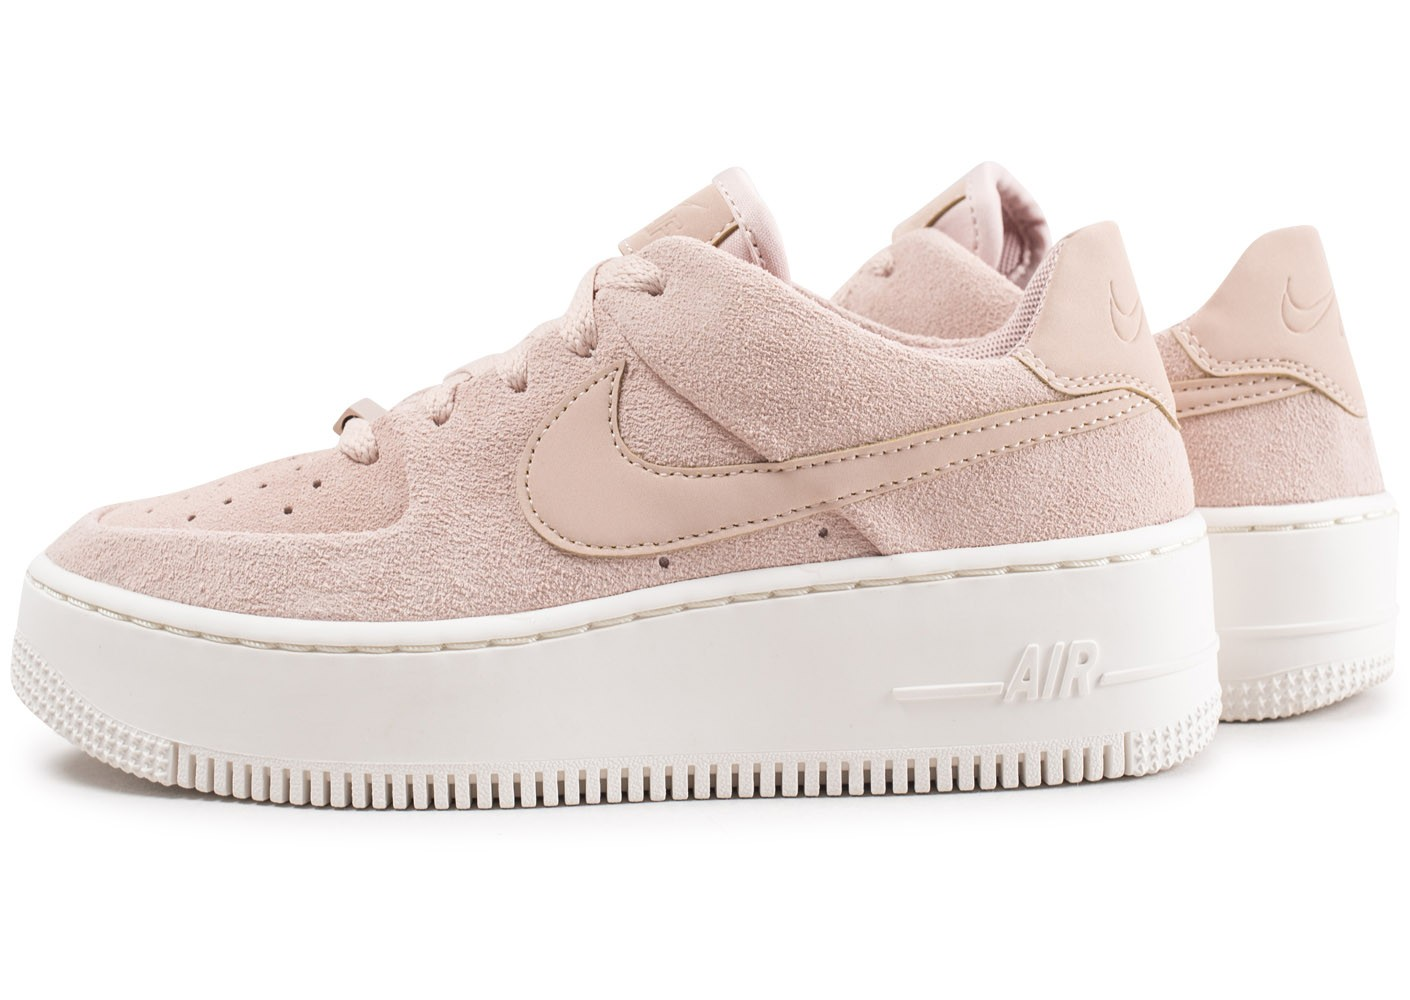 Basket Nike air force one cuir daim nubuck beige 37 37,5 plateforme